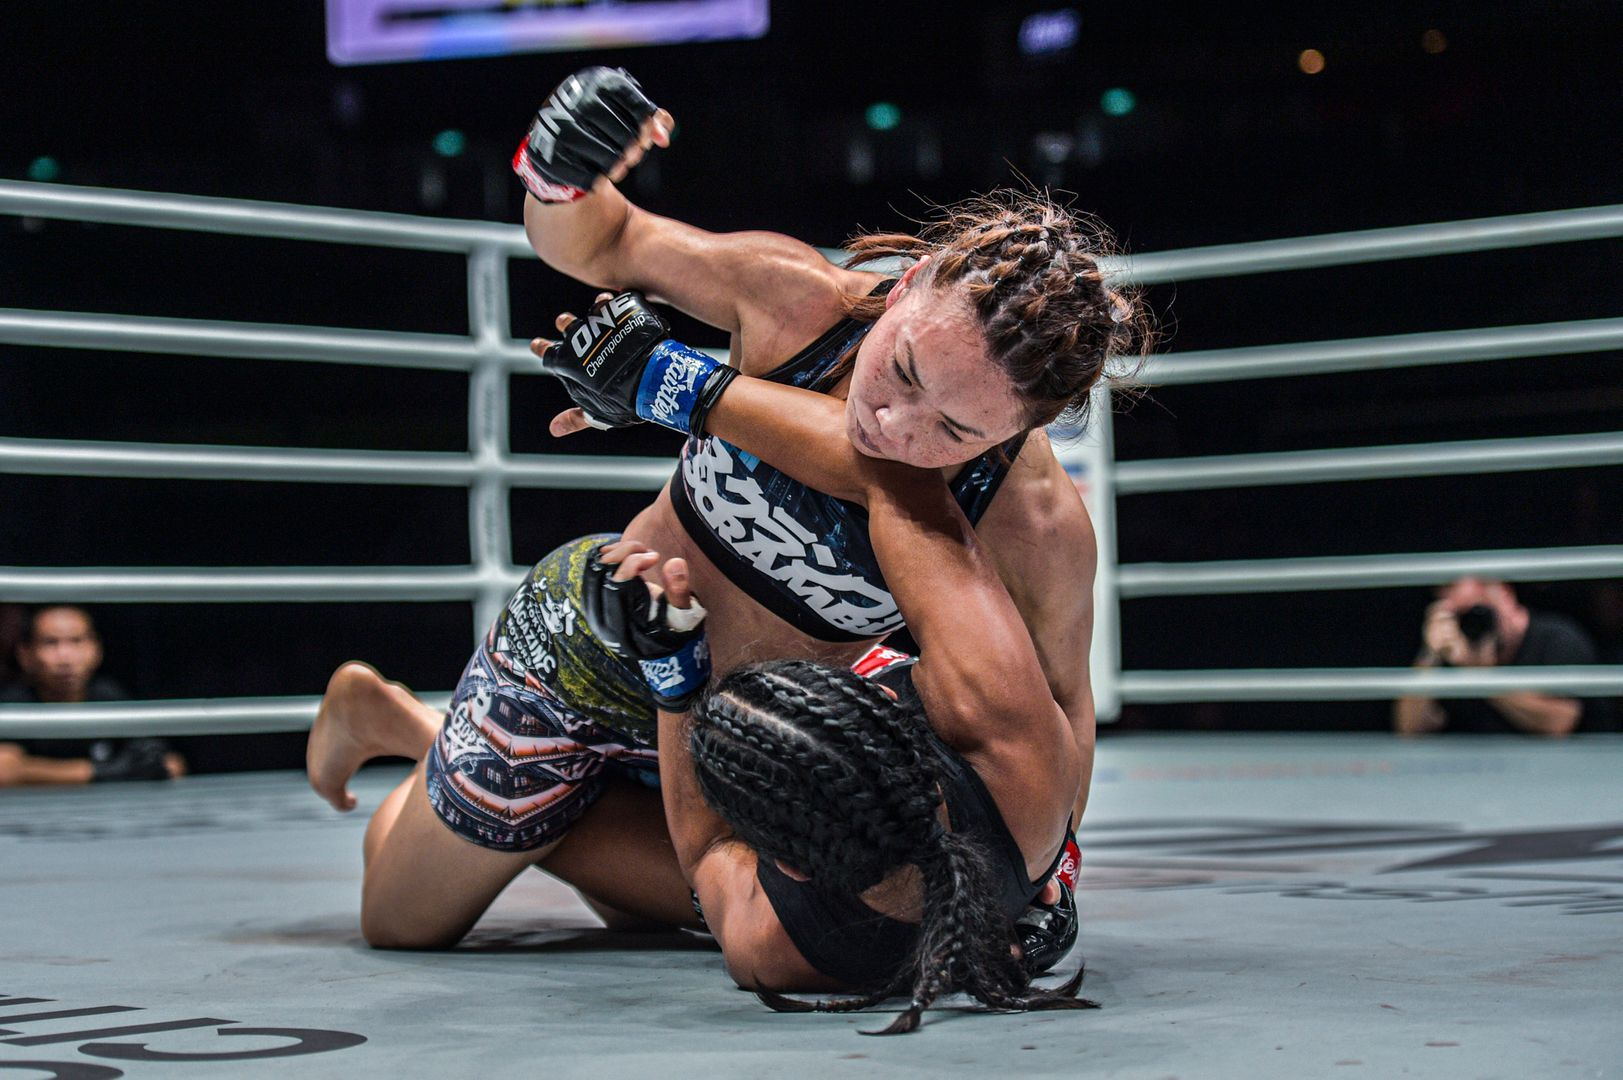 Japanese mixed martial artist Mei Yamaguchi drops her ground and pound